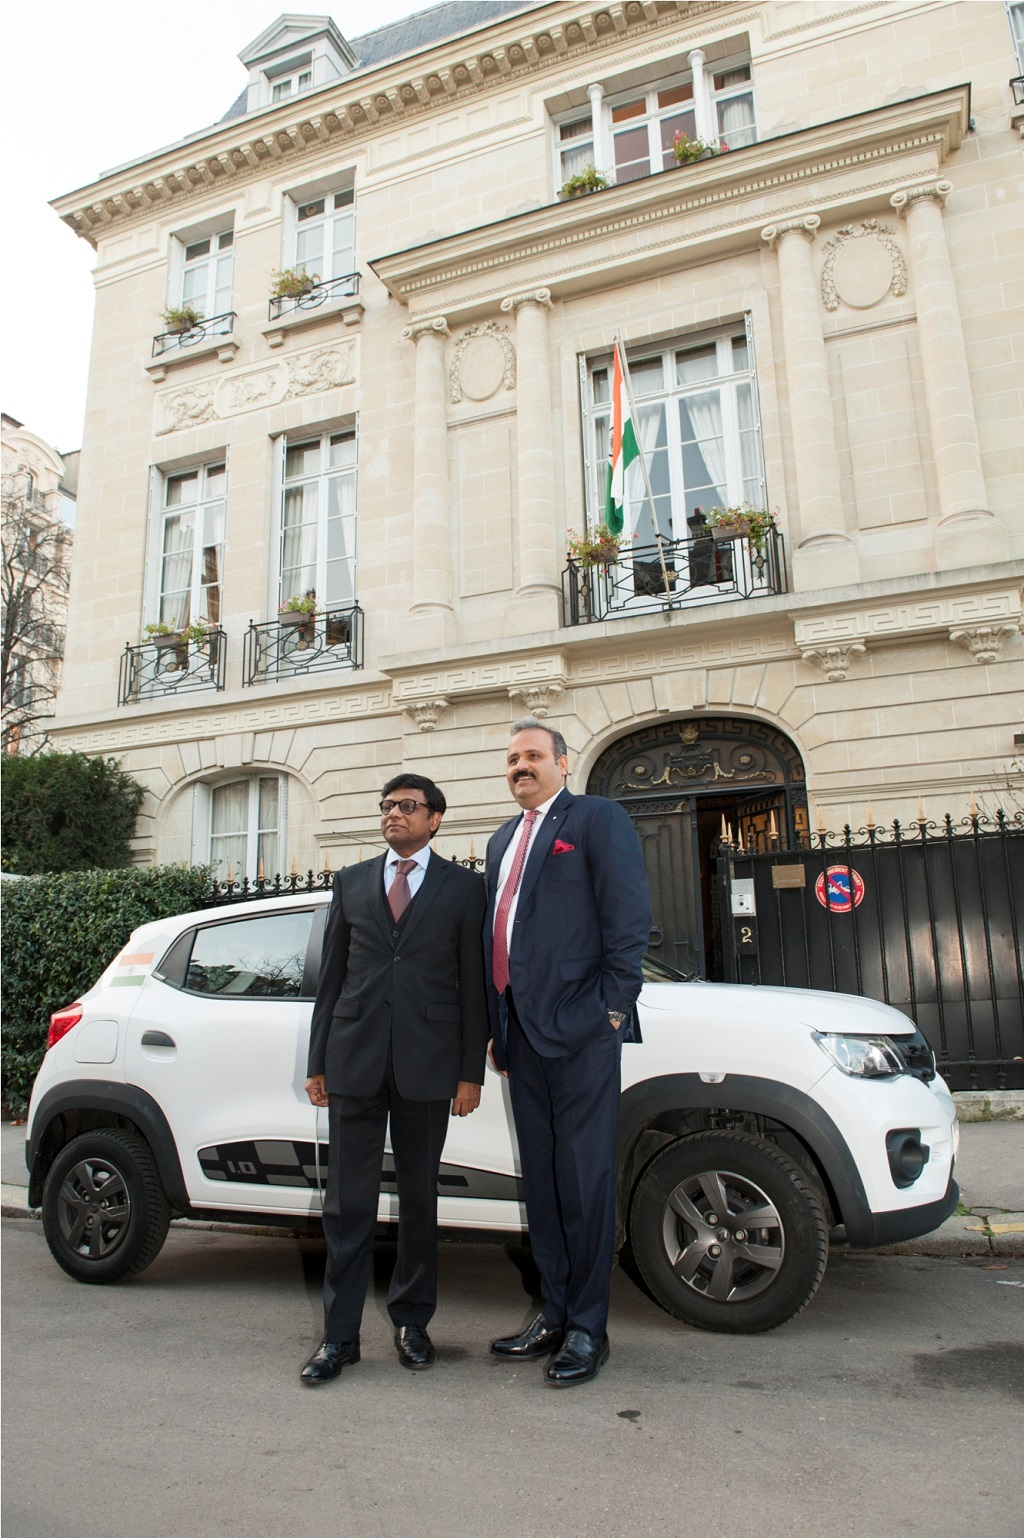 image-1-l-r-dr-mohan-kumar-ambassador-of-india-in-france-and-mr-sumit-sawhney-country-ceo-and-md-renault-india-operations